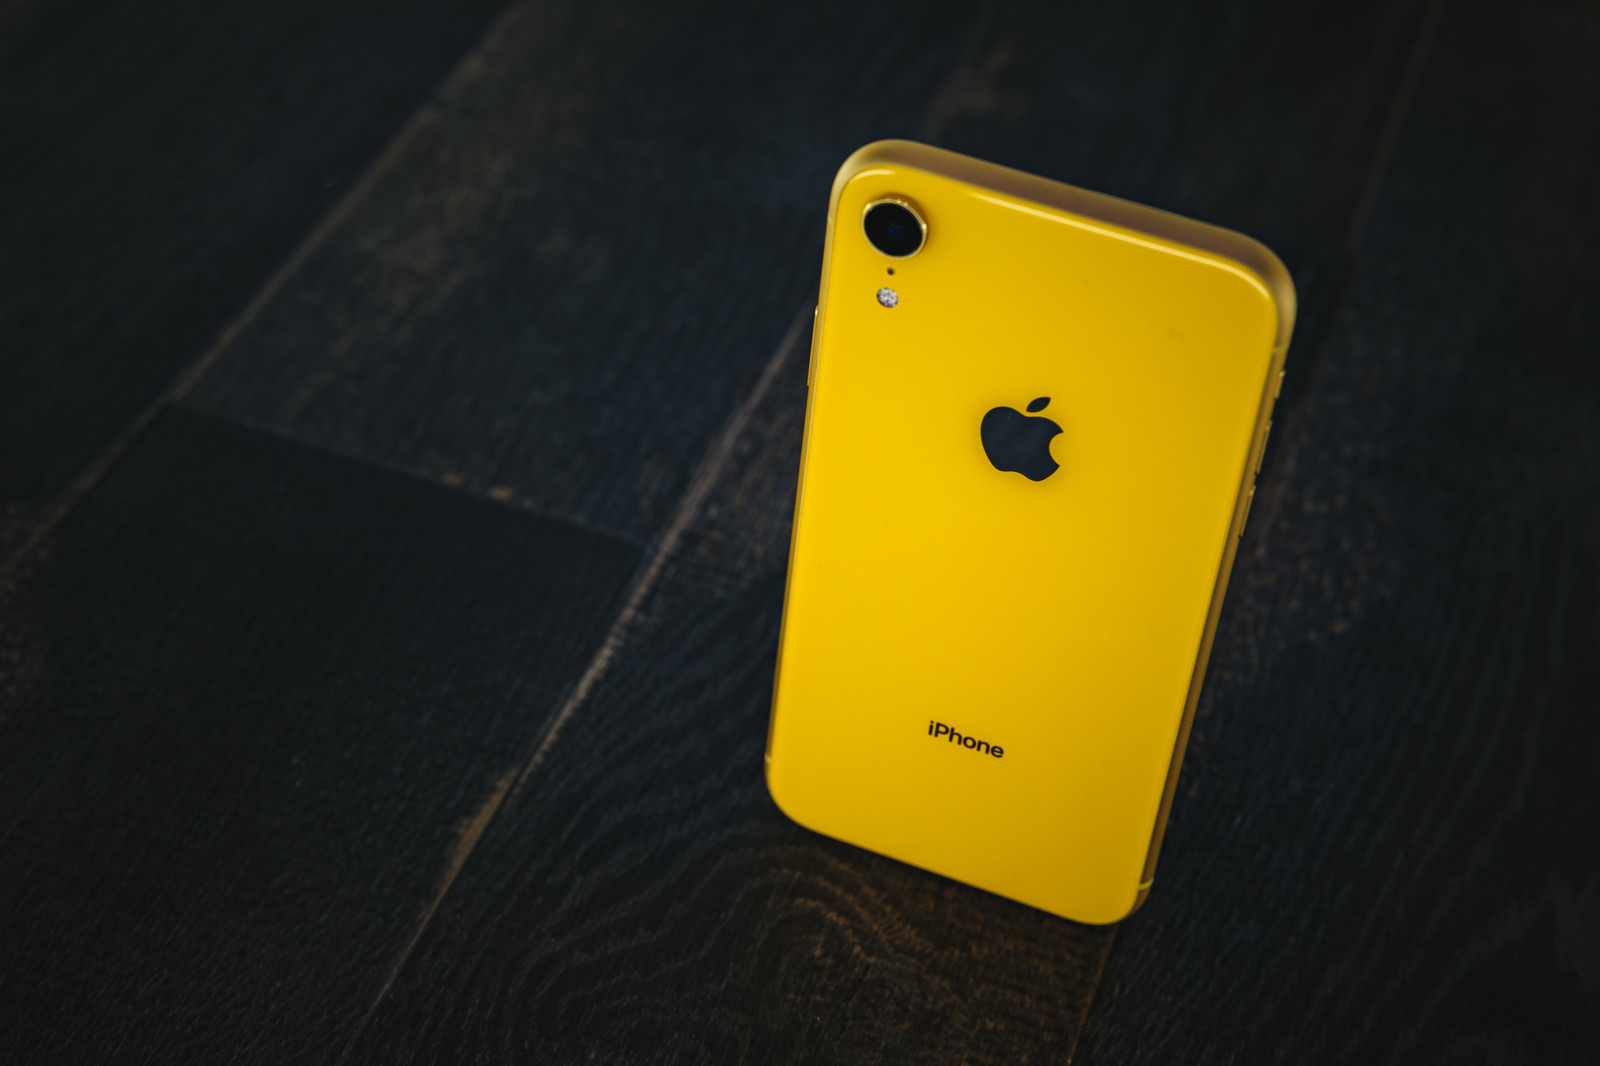 「iPhone XR yellow」の写真